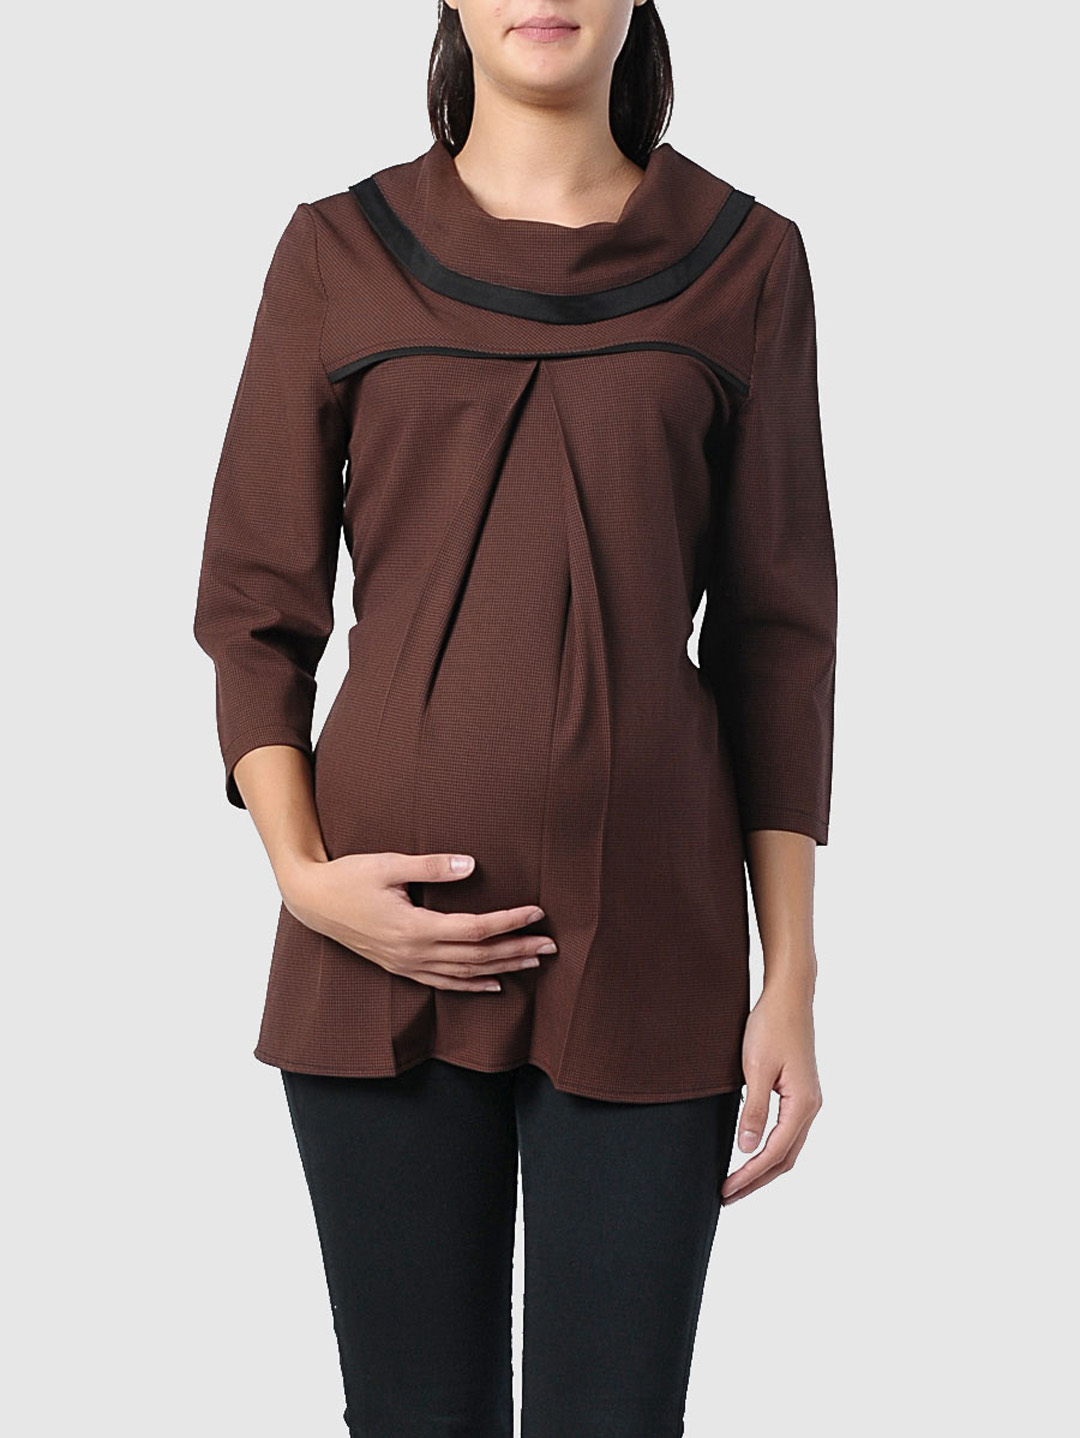 Thyme Maternity-Maternity Clothes Shop stylish and comfortable maternity clothes from Thyme Maternity! Designed for pregnancy, our maternity wear is crafted from high-quality and durable fabrics for fits that flatter your bump in total comfort.